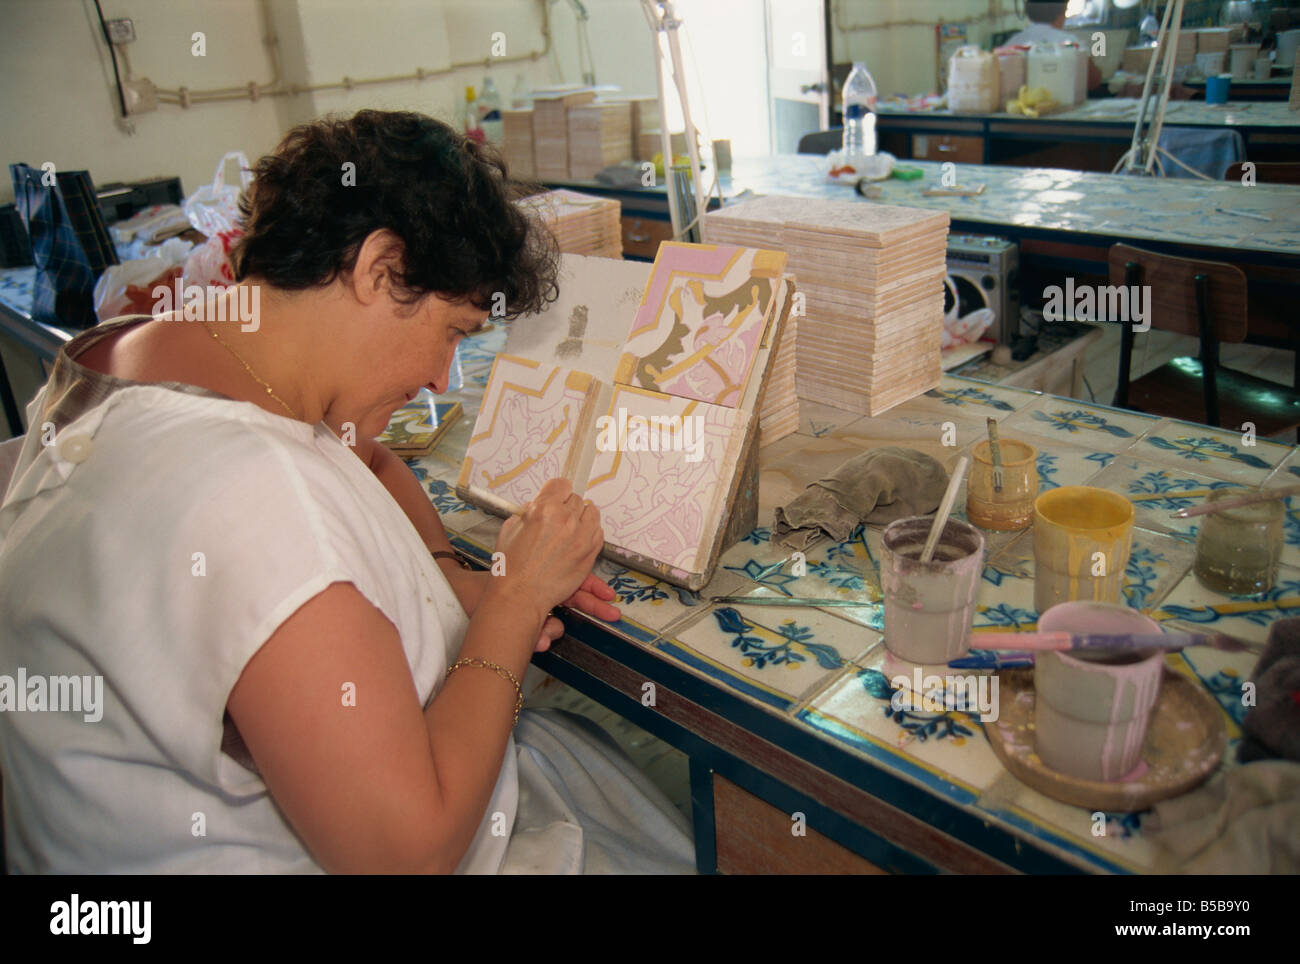 Woman painting on tiles, Sant'Ana azulejos factory, Lisbon, Portugal, Europe - Stock Image